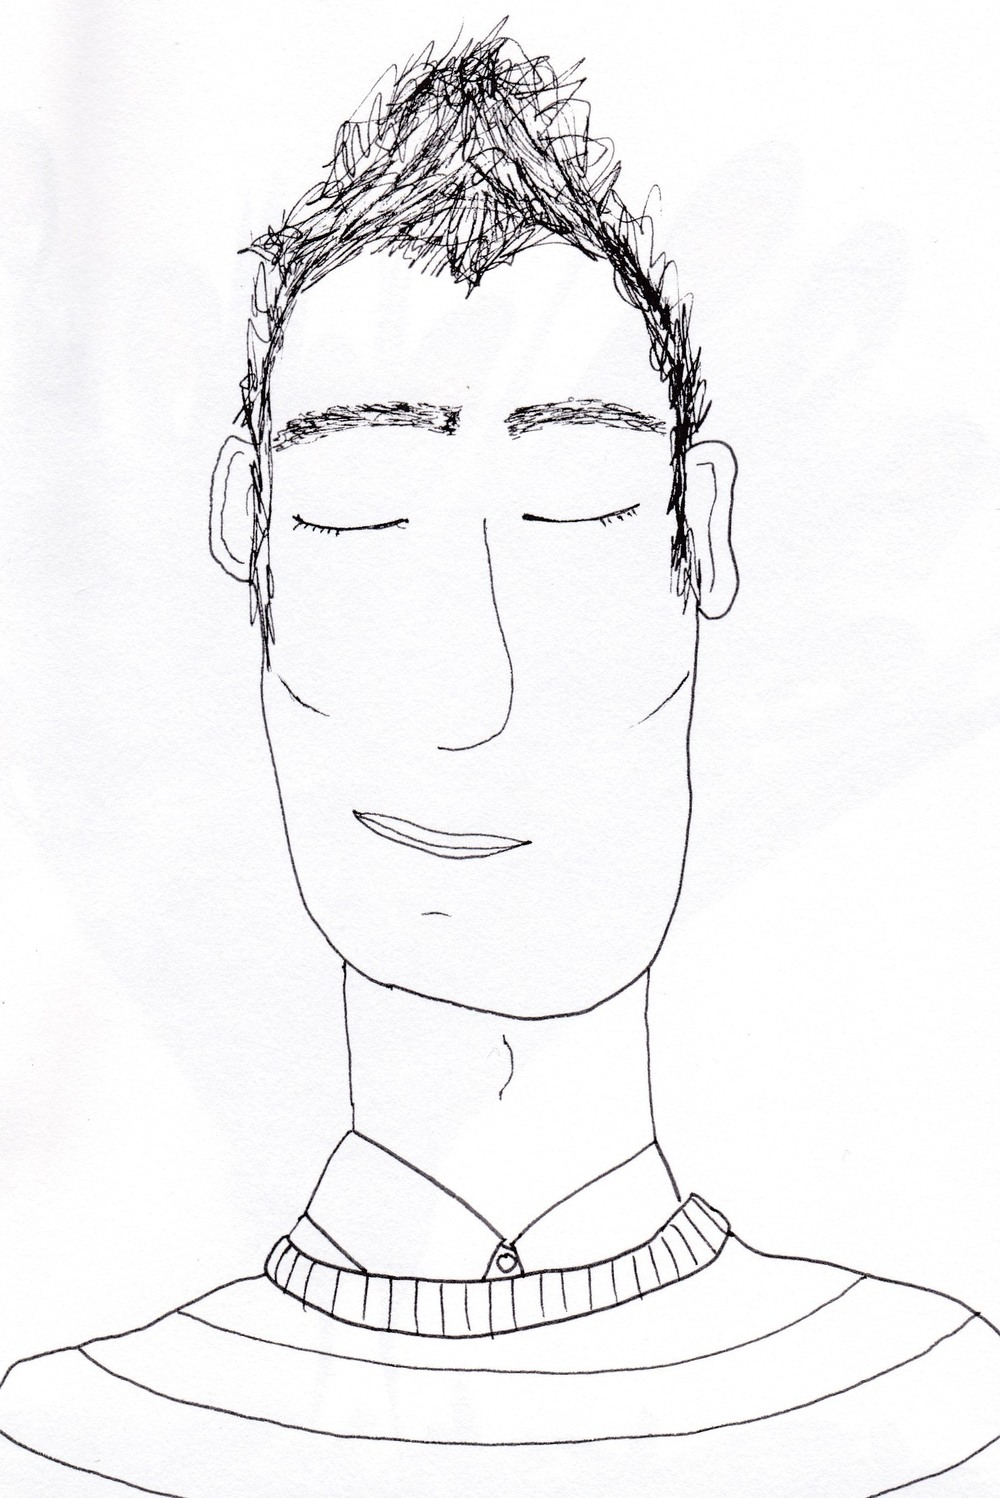 An illustration of an imaginary man called Simon by Alice Beese